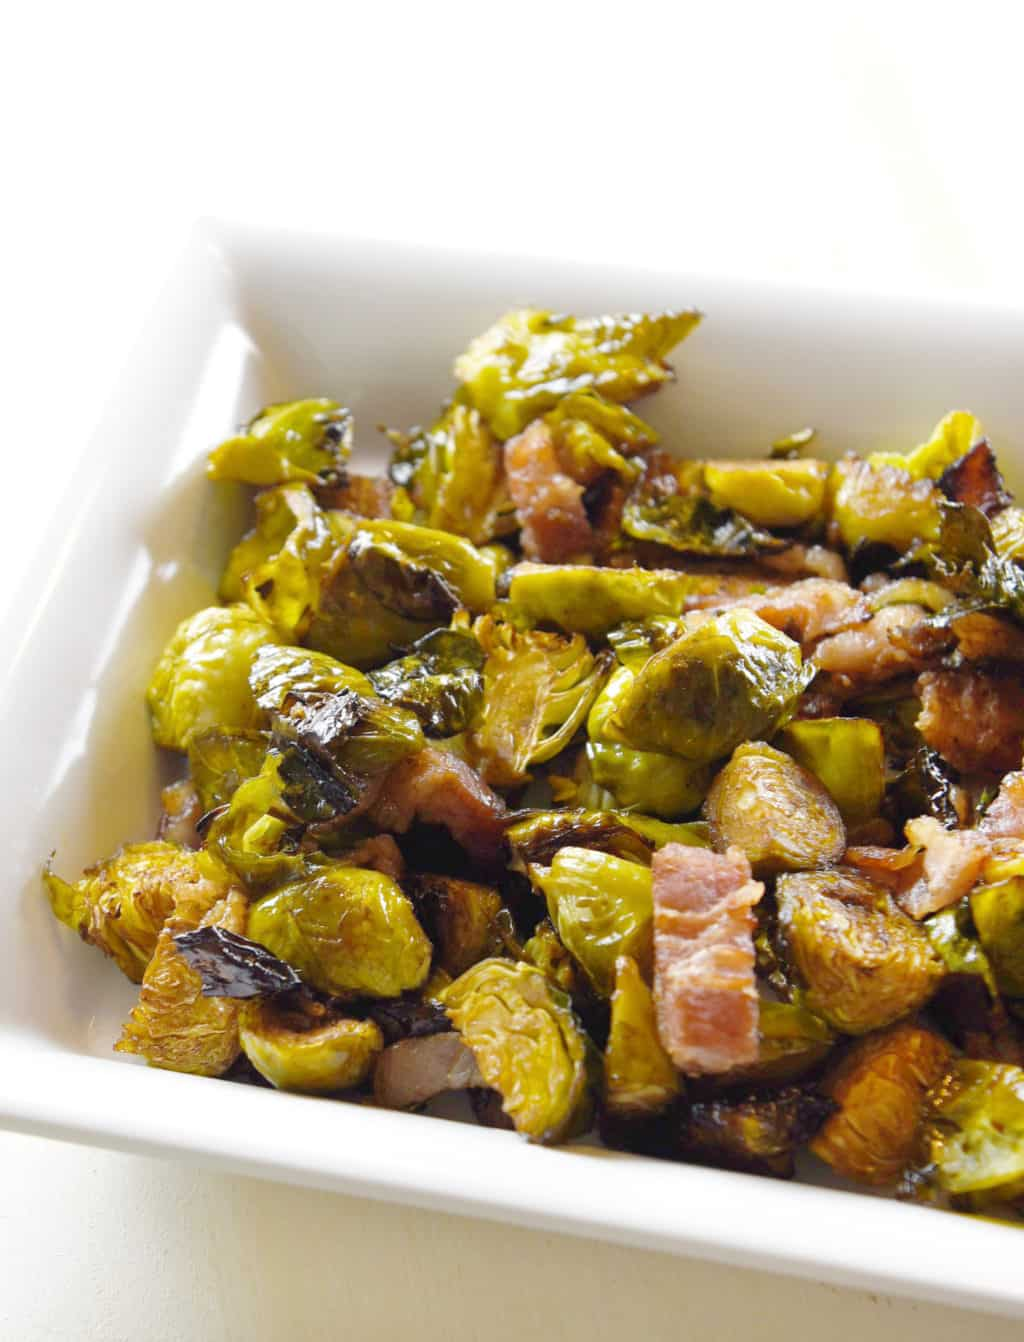 Balsamic and Bacon Roasted Bussels Sprouts!! A favorite side dish loved by all who try it. Sweet, salty and wonderful!